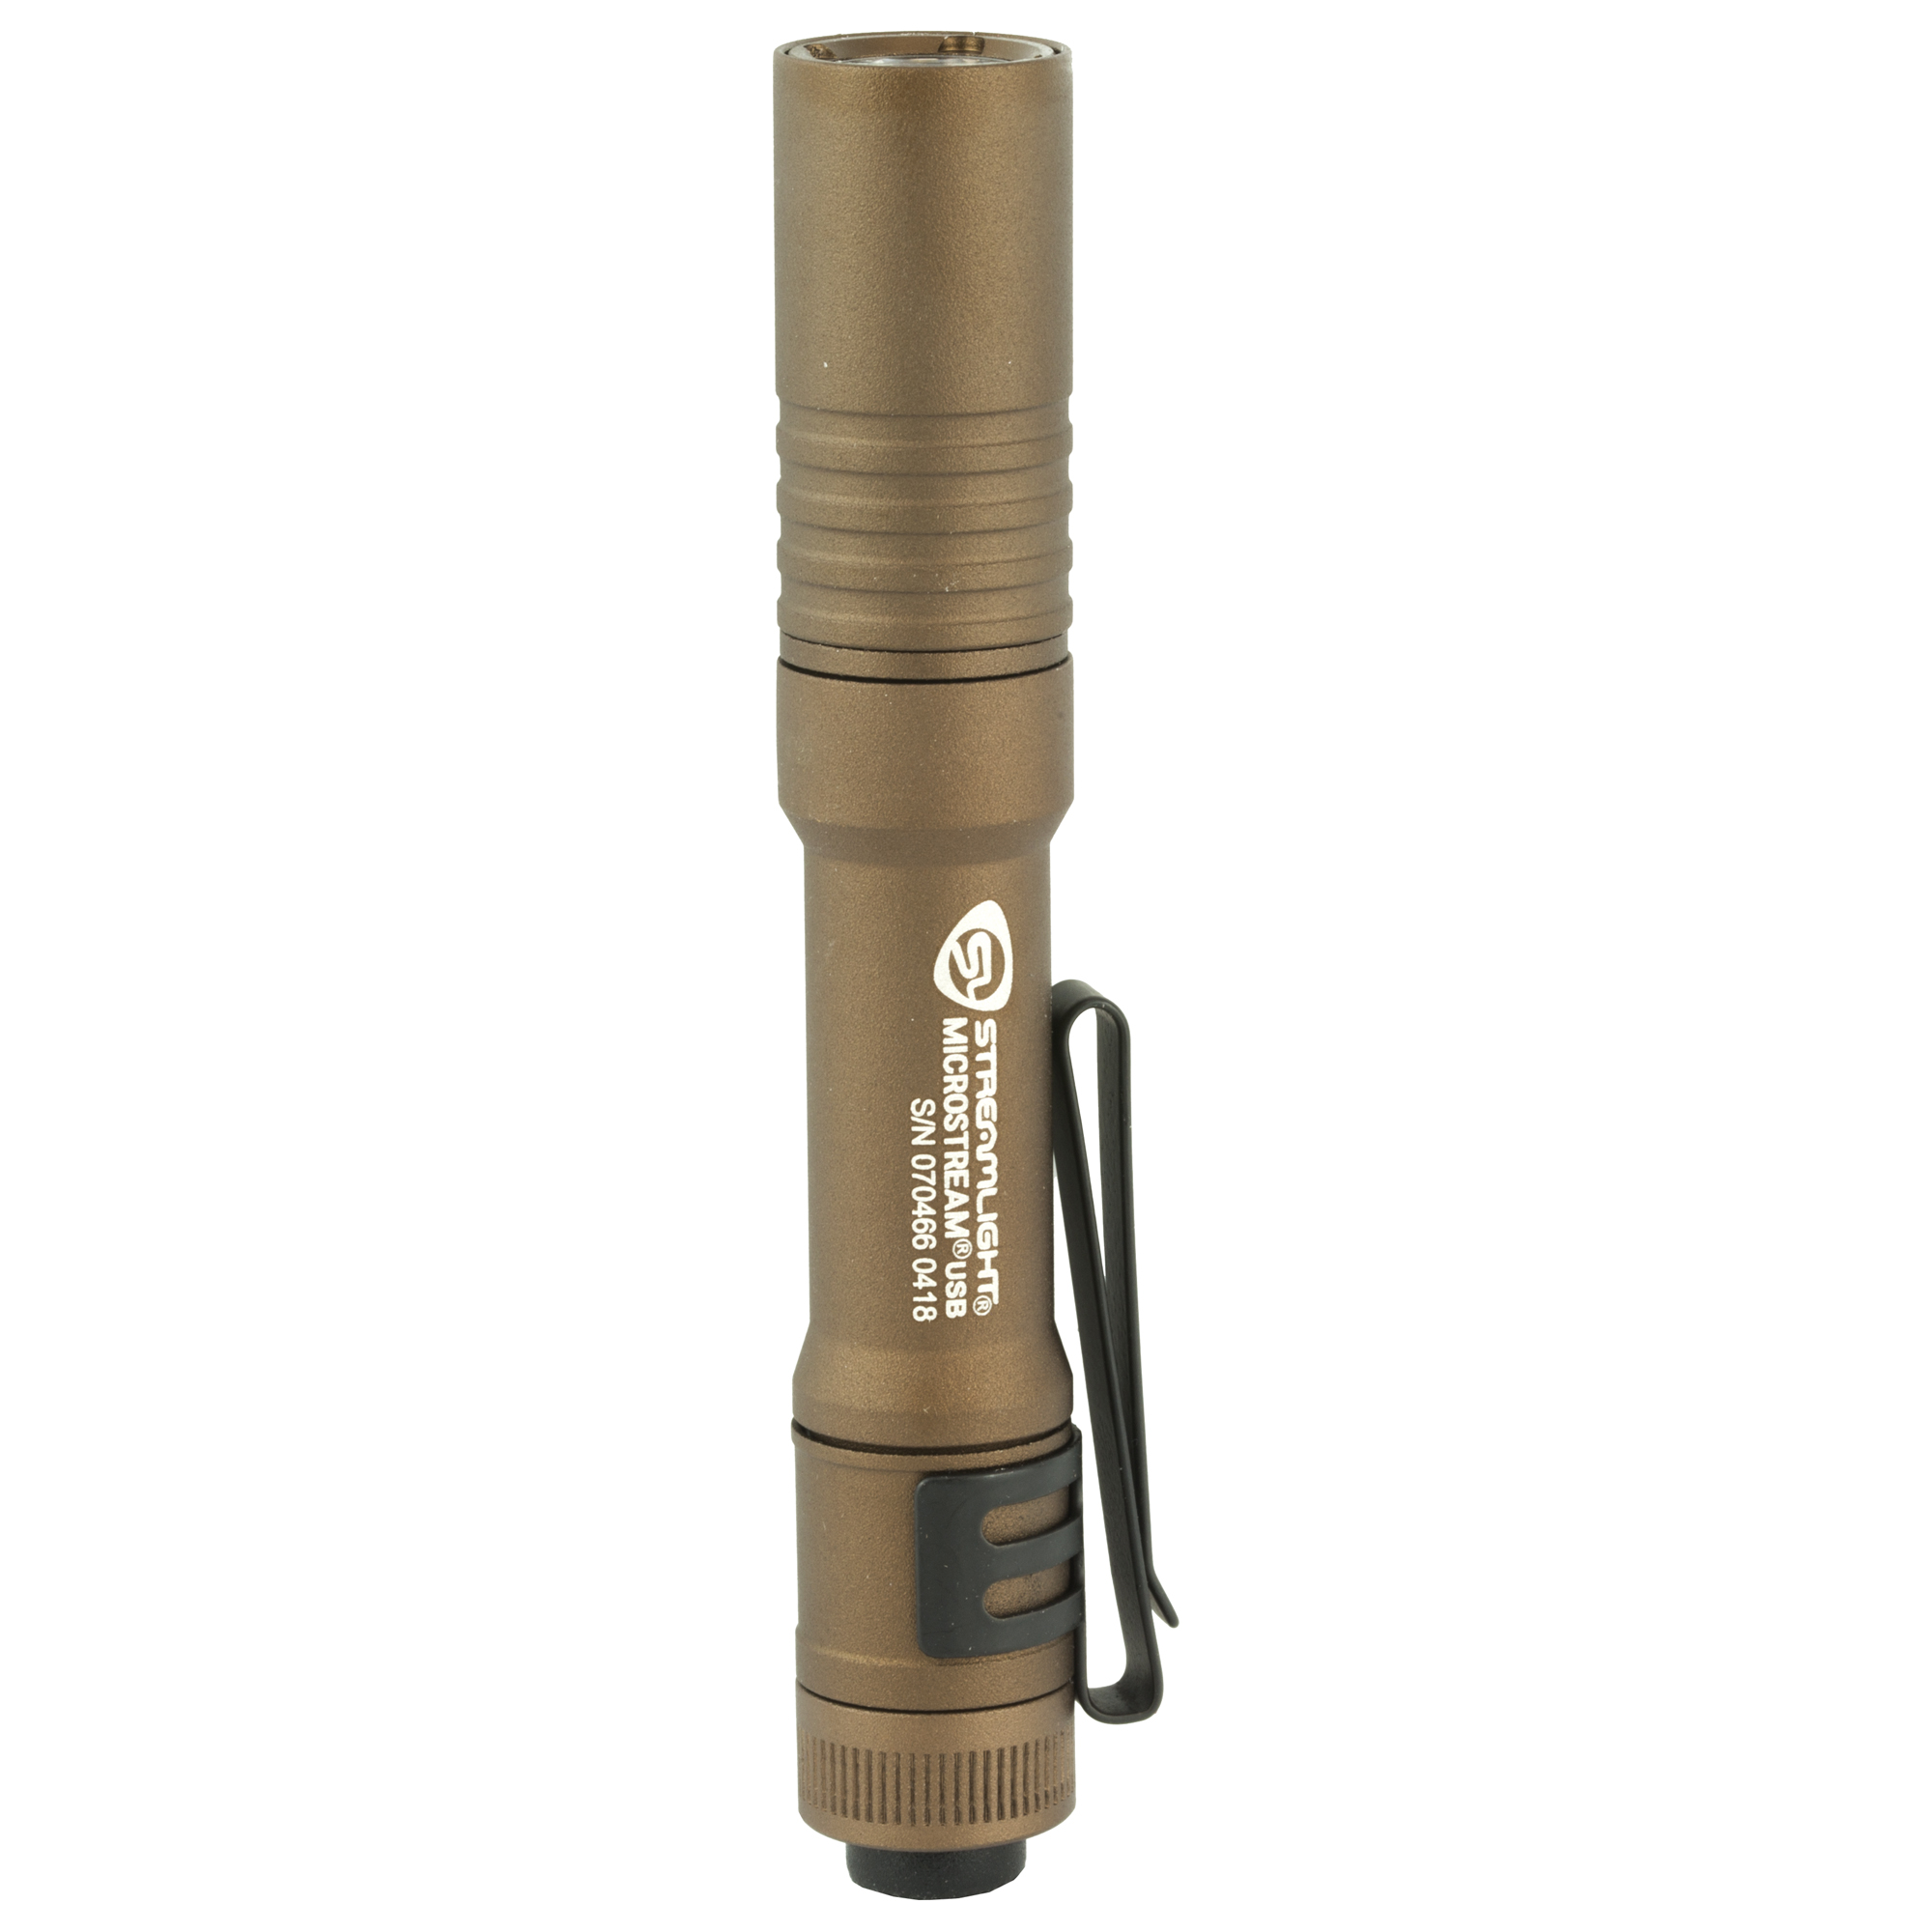 "Streamlight's popular MicroStream is now available in a rechargeable model. Ultra-compact"" this personal light"" which fits in the palm of your hand or comfortably in your pocket"" provides unparalleled performance for its size."